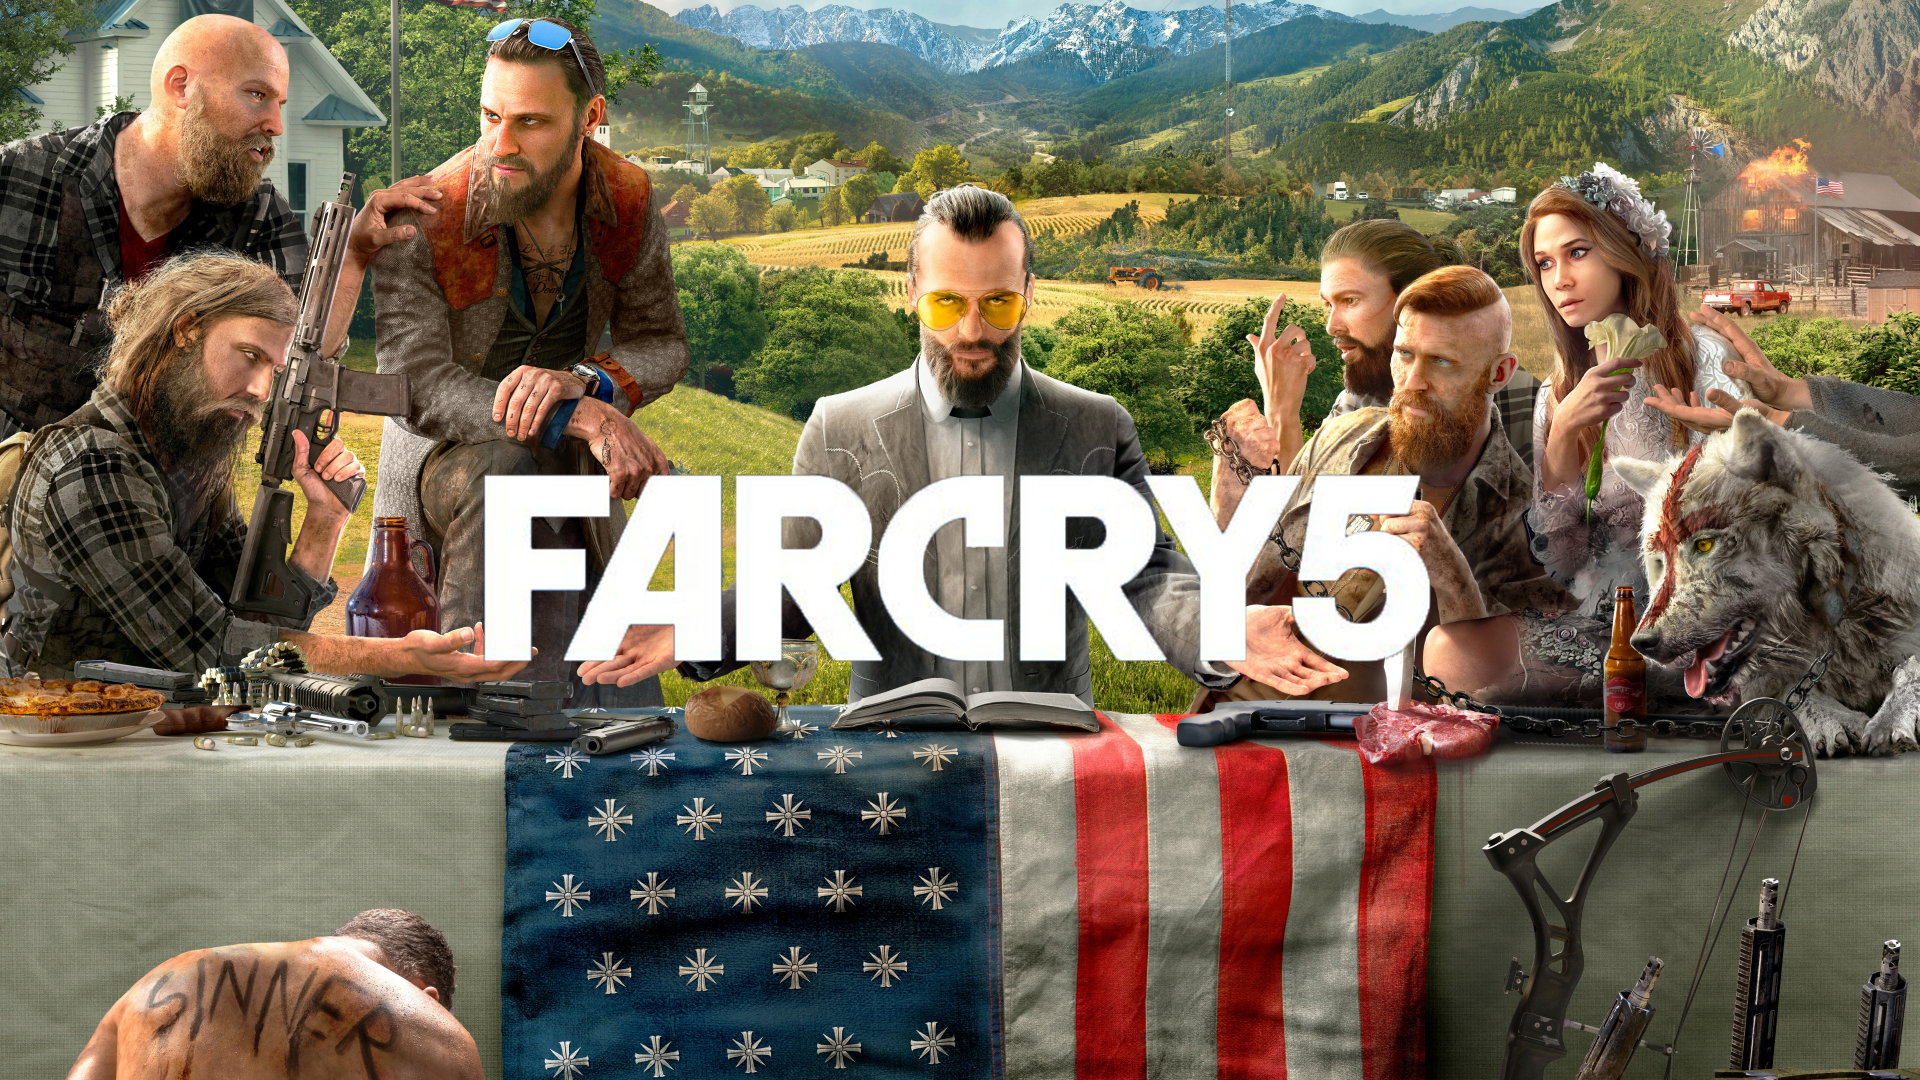 Far Cry 5 - Welcome to a Nerdentials Let's Play! This week, your nerd host Joe is taking a break from the desert in AC: Origins...and jumping into a new game that just came out... FAR CRY 5! Come check out the mayhem in this latest release from Ubisoft!